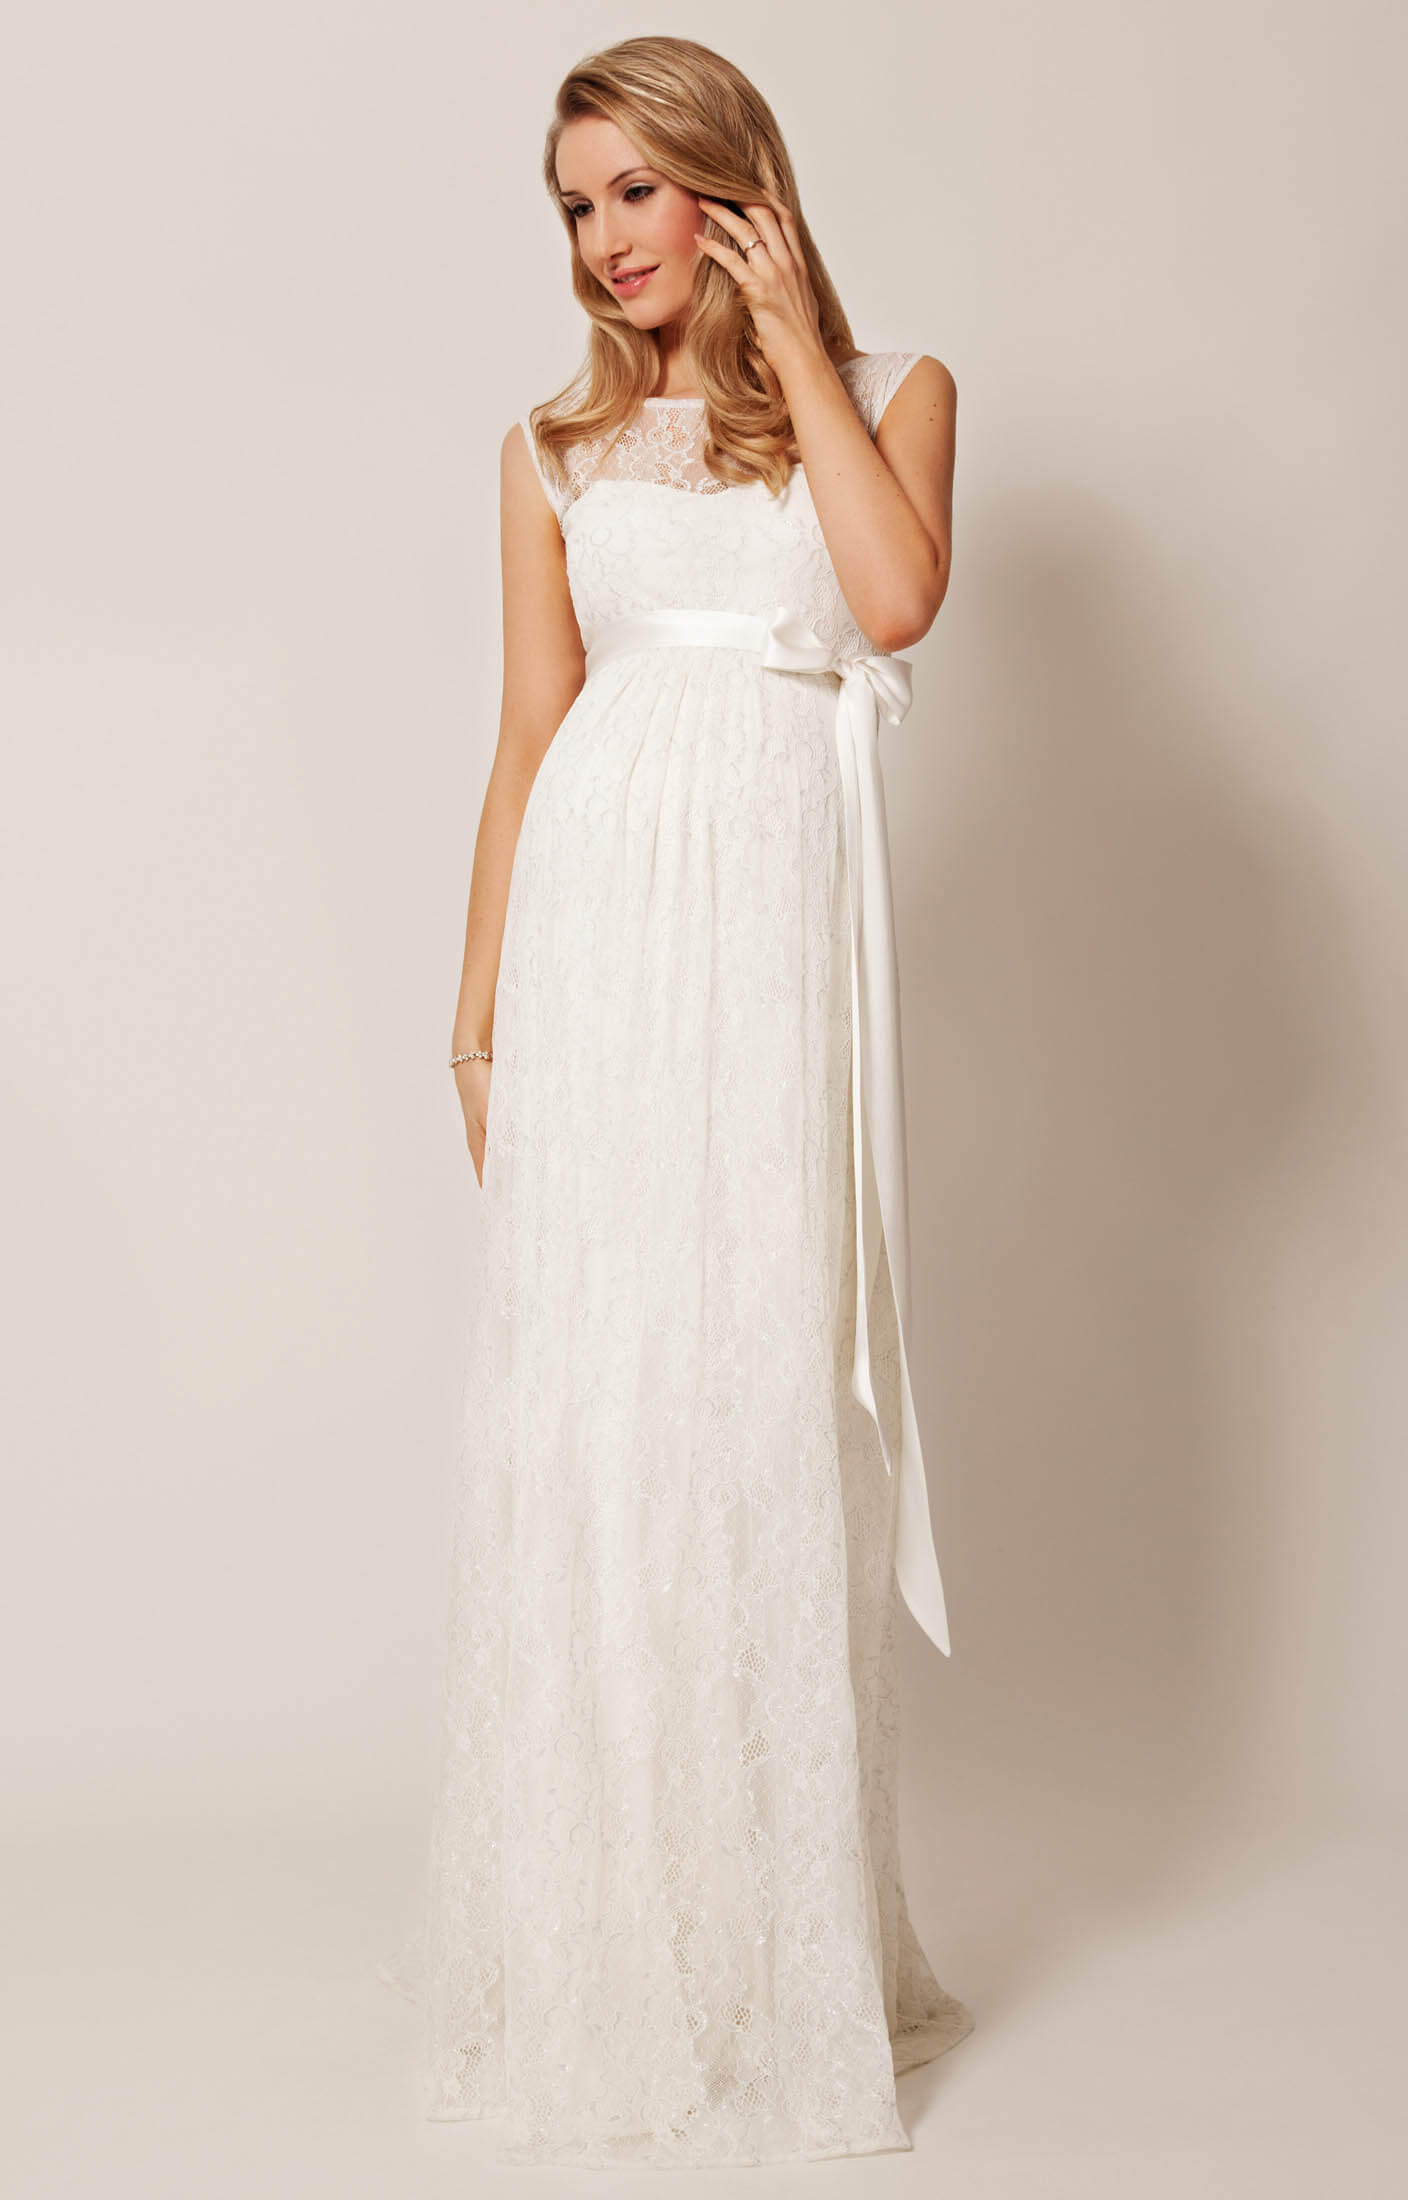 Ellie maternity wedding gown long ivory maternity for Pregnancy dress for wedding